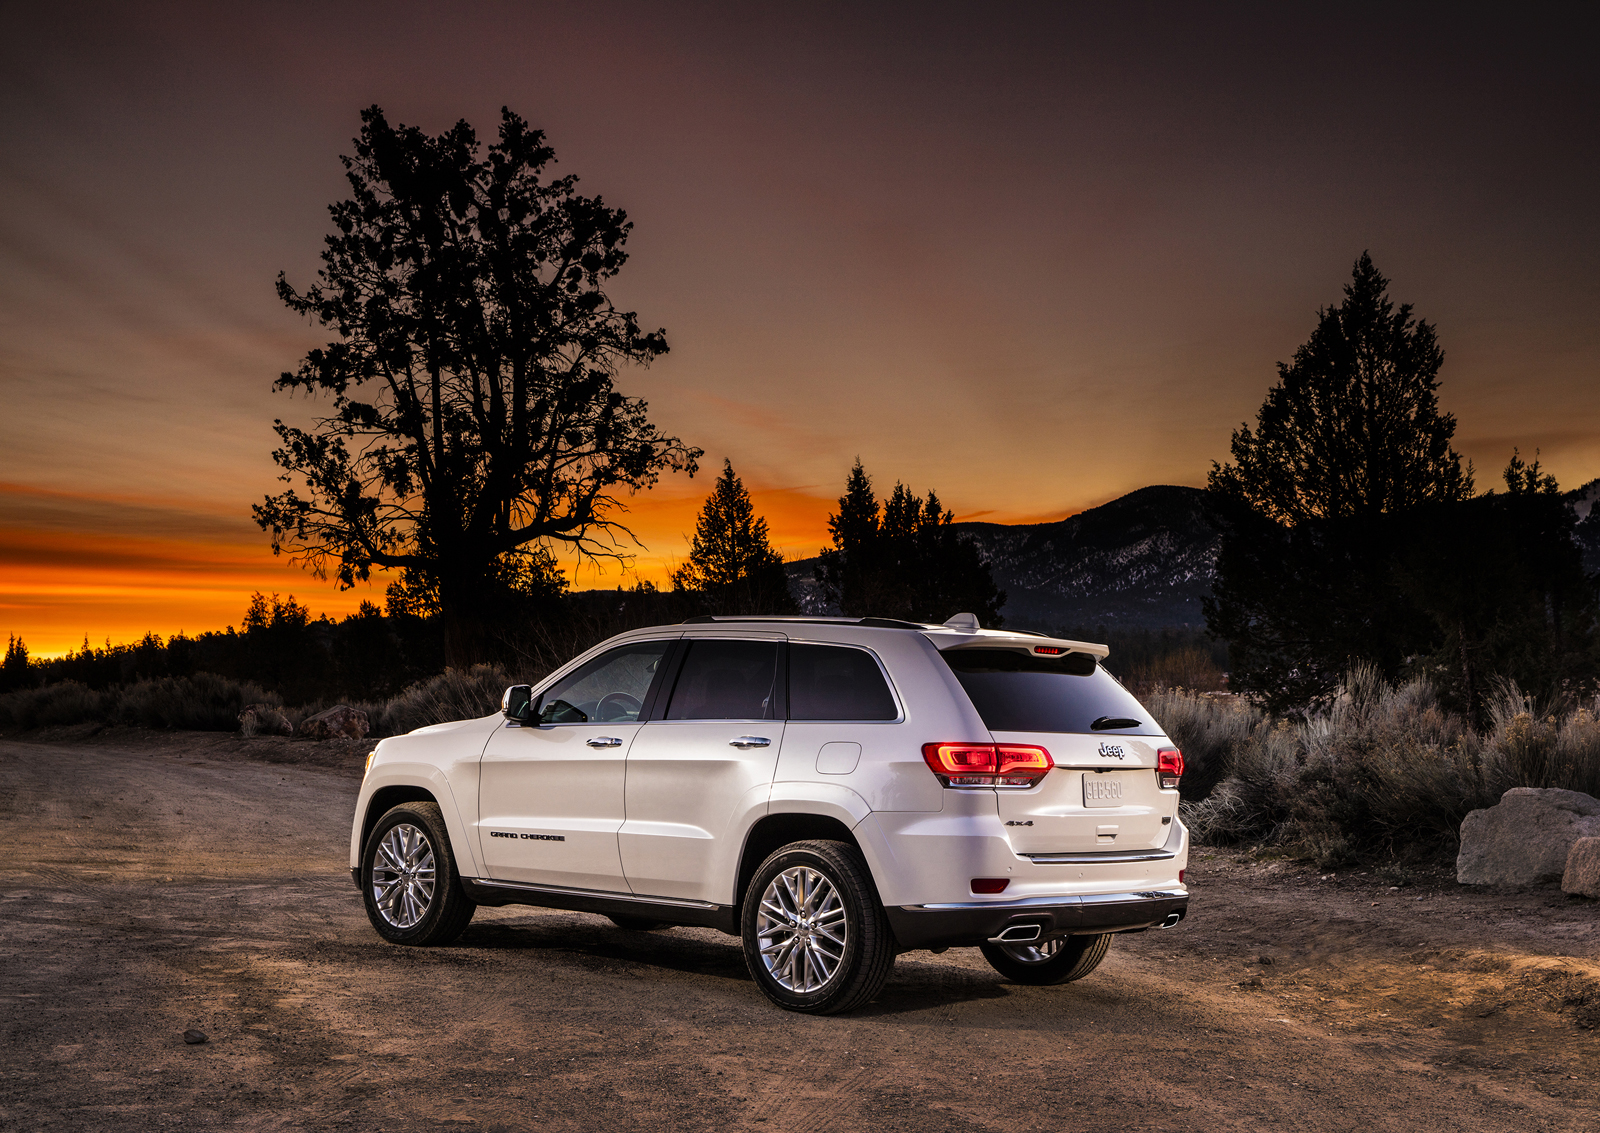 2017 jeep grand cherokee 4x4 earns 5 star nhtsa safety rating rwd model gets 4 stars carscoops. Black Bedroom Furniture Sets. Home Design Ideas